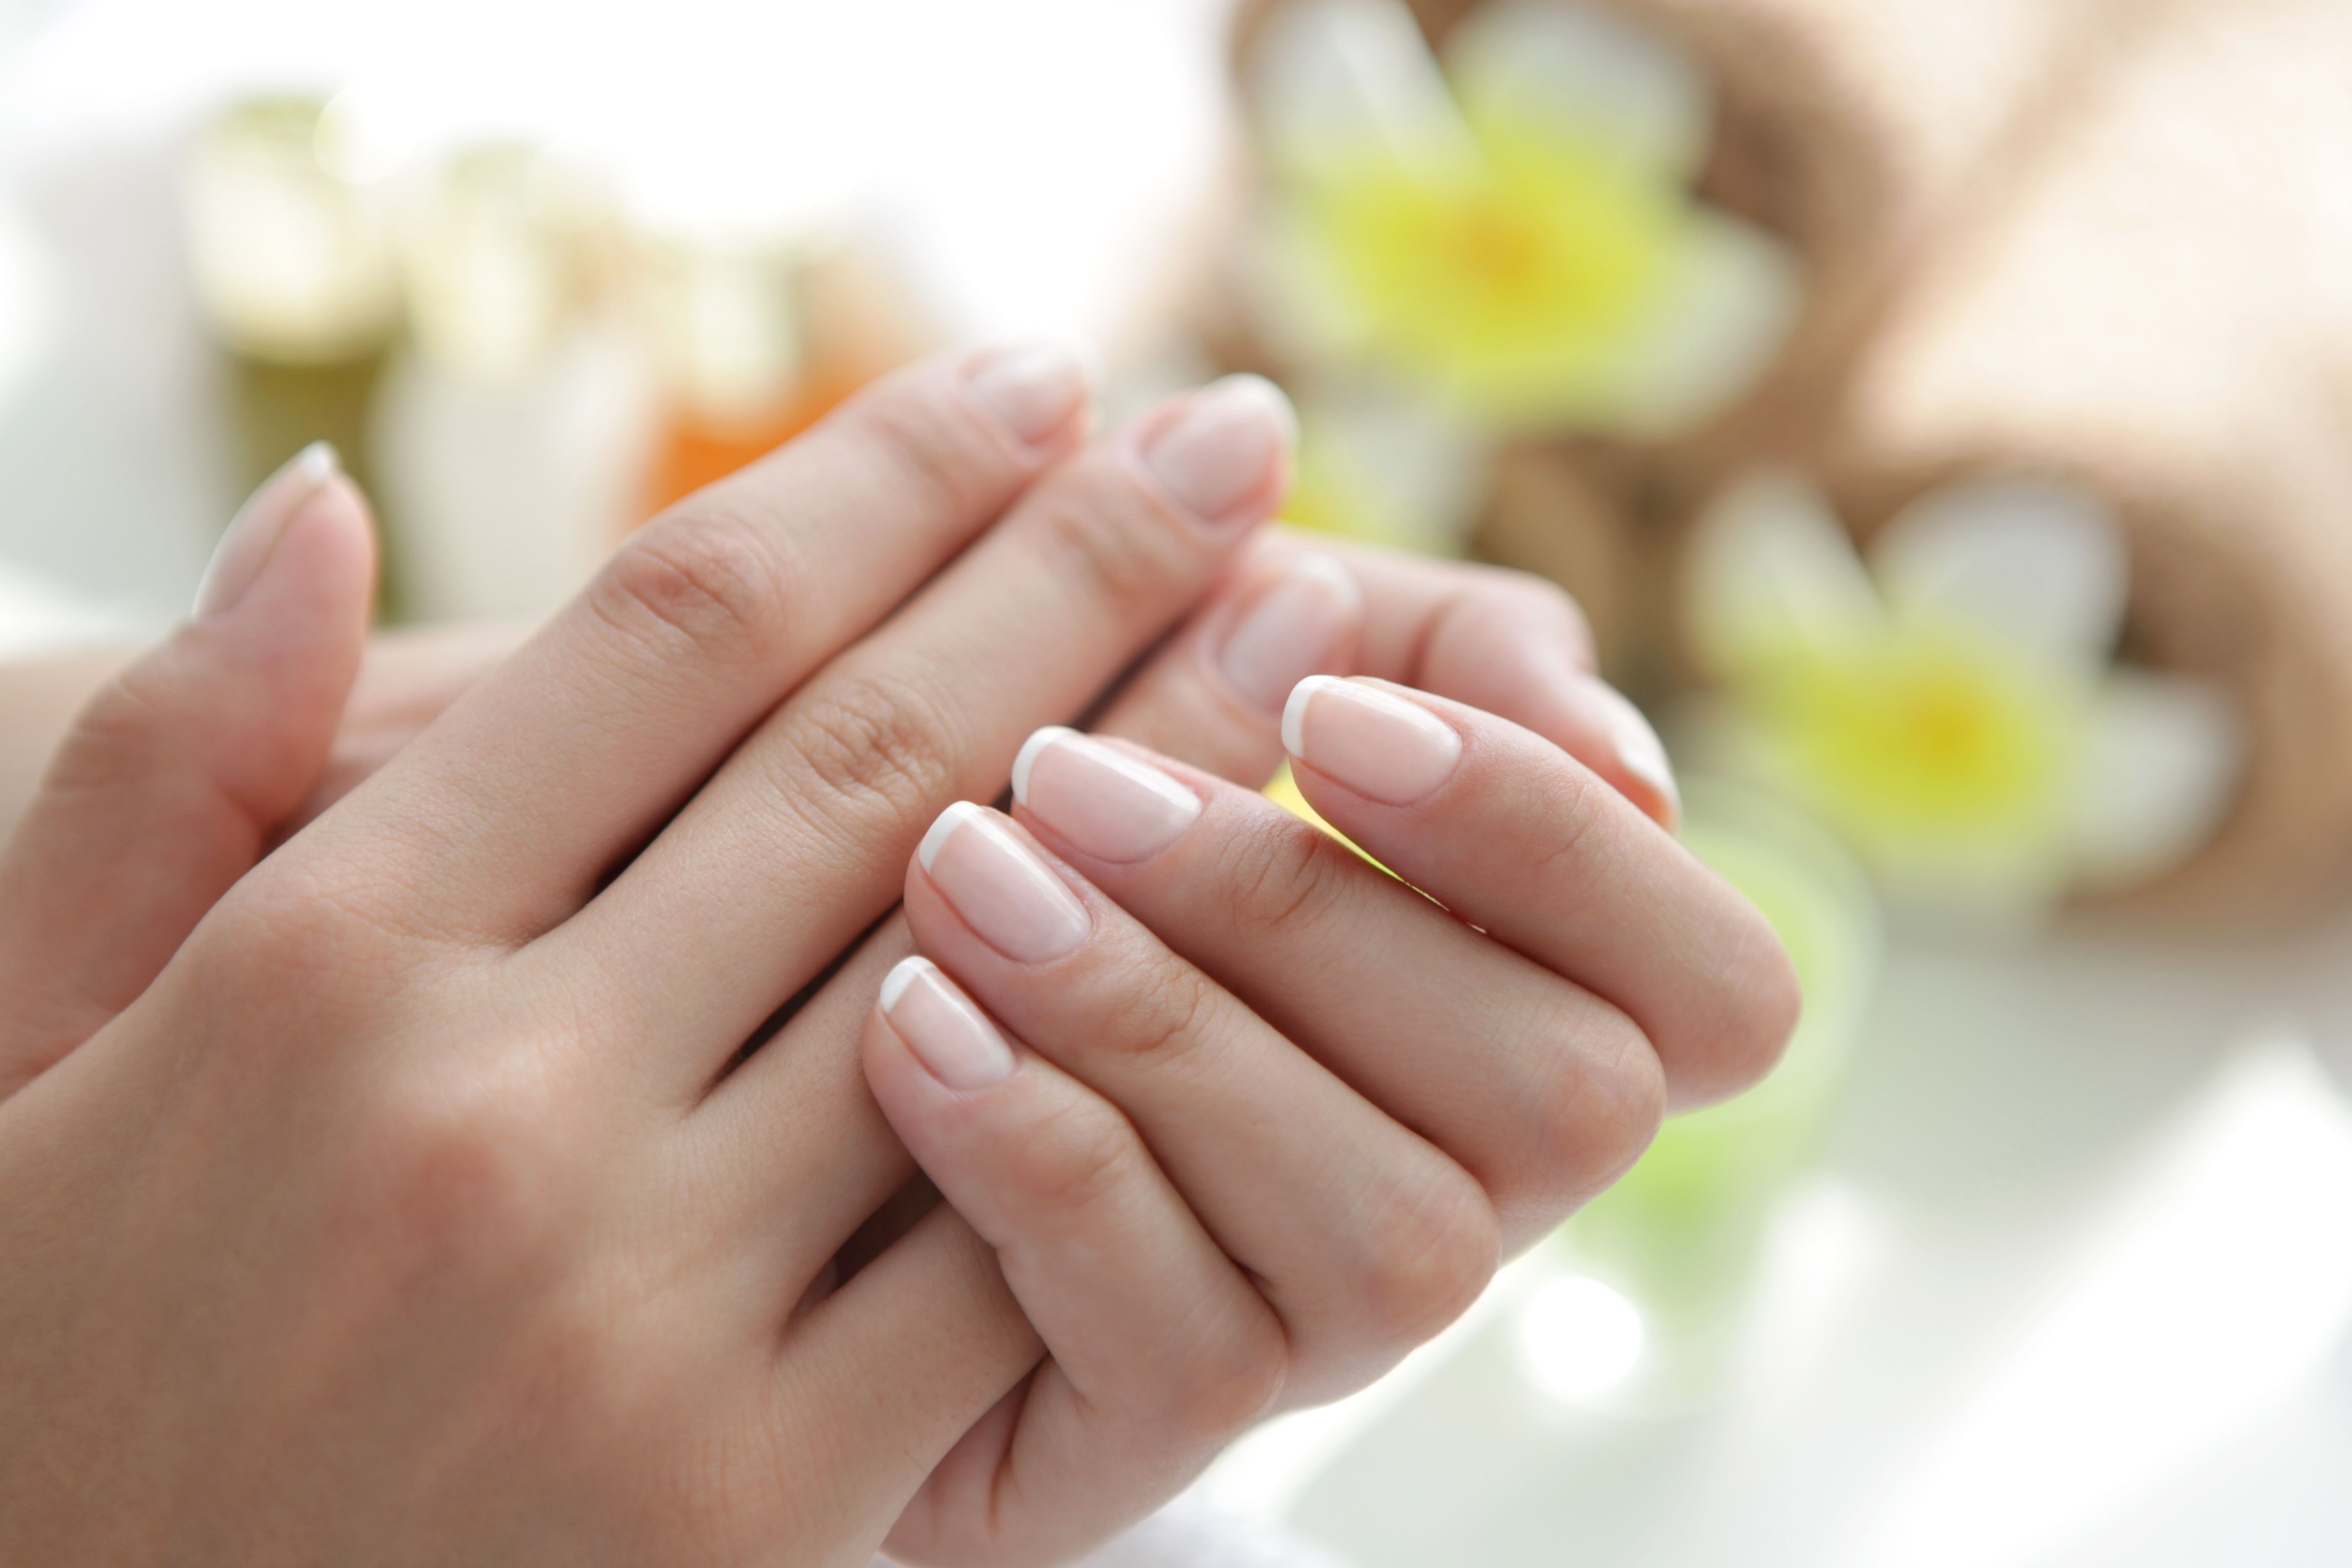 8f7ea6a3d 15 Important Tips to Get Strong and Healthy Nails